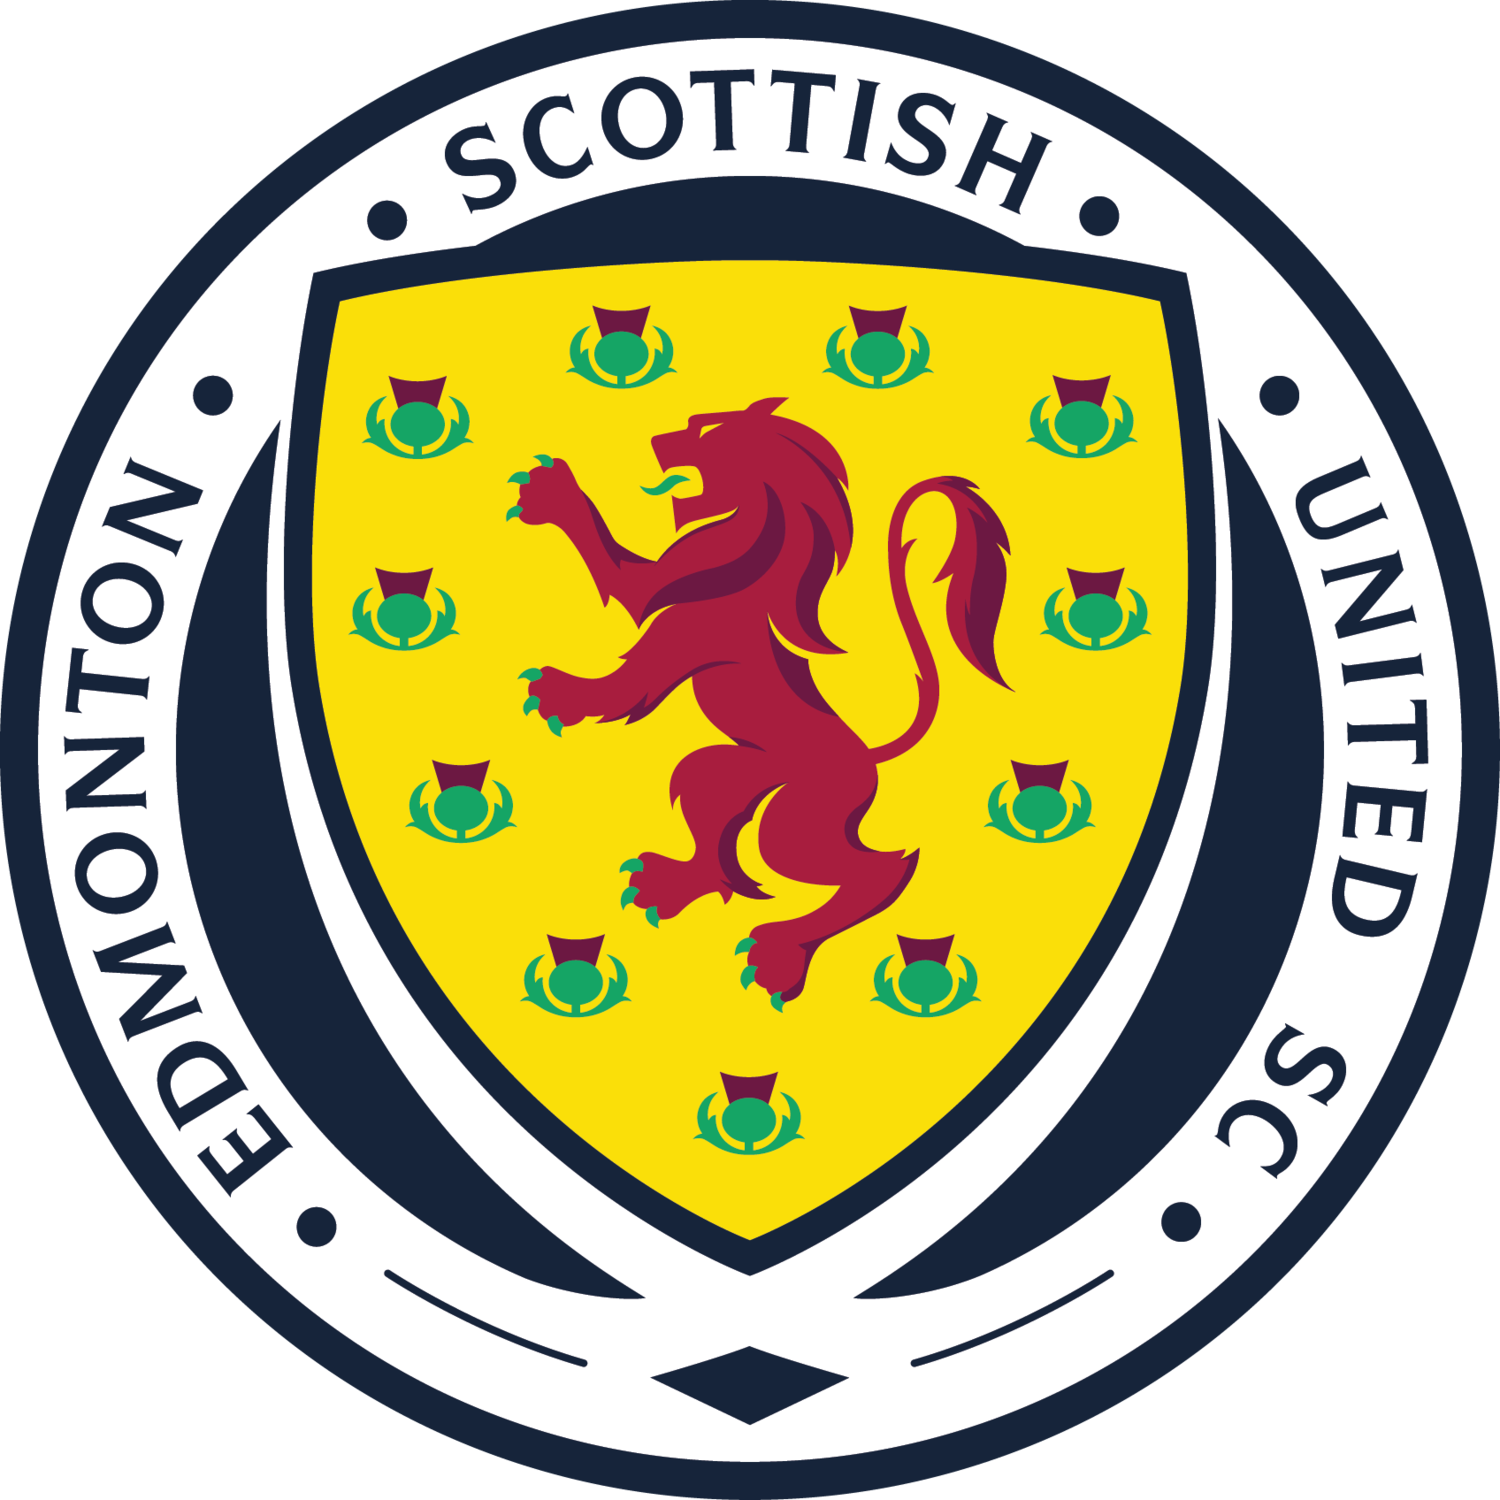 Edmonton Scottish United Soccer Club